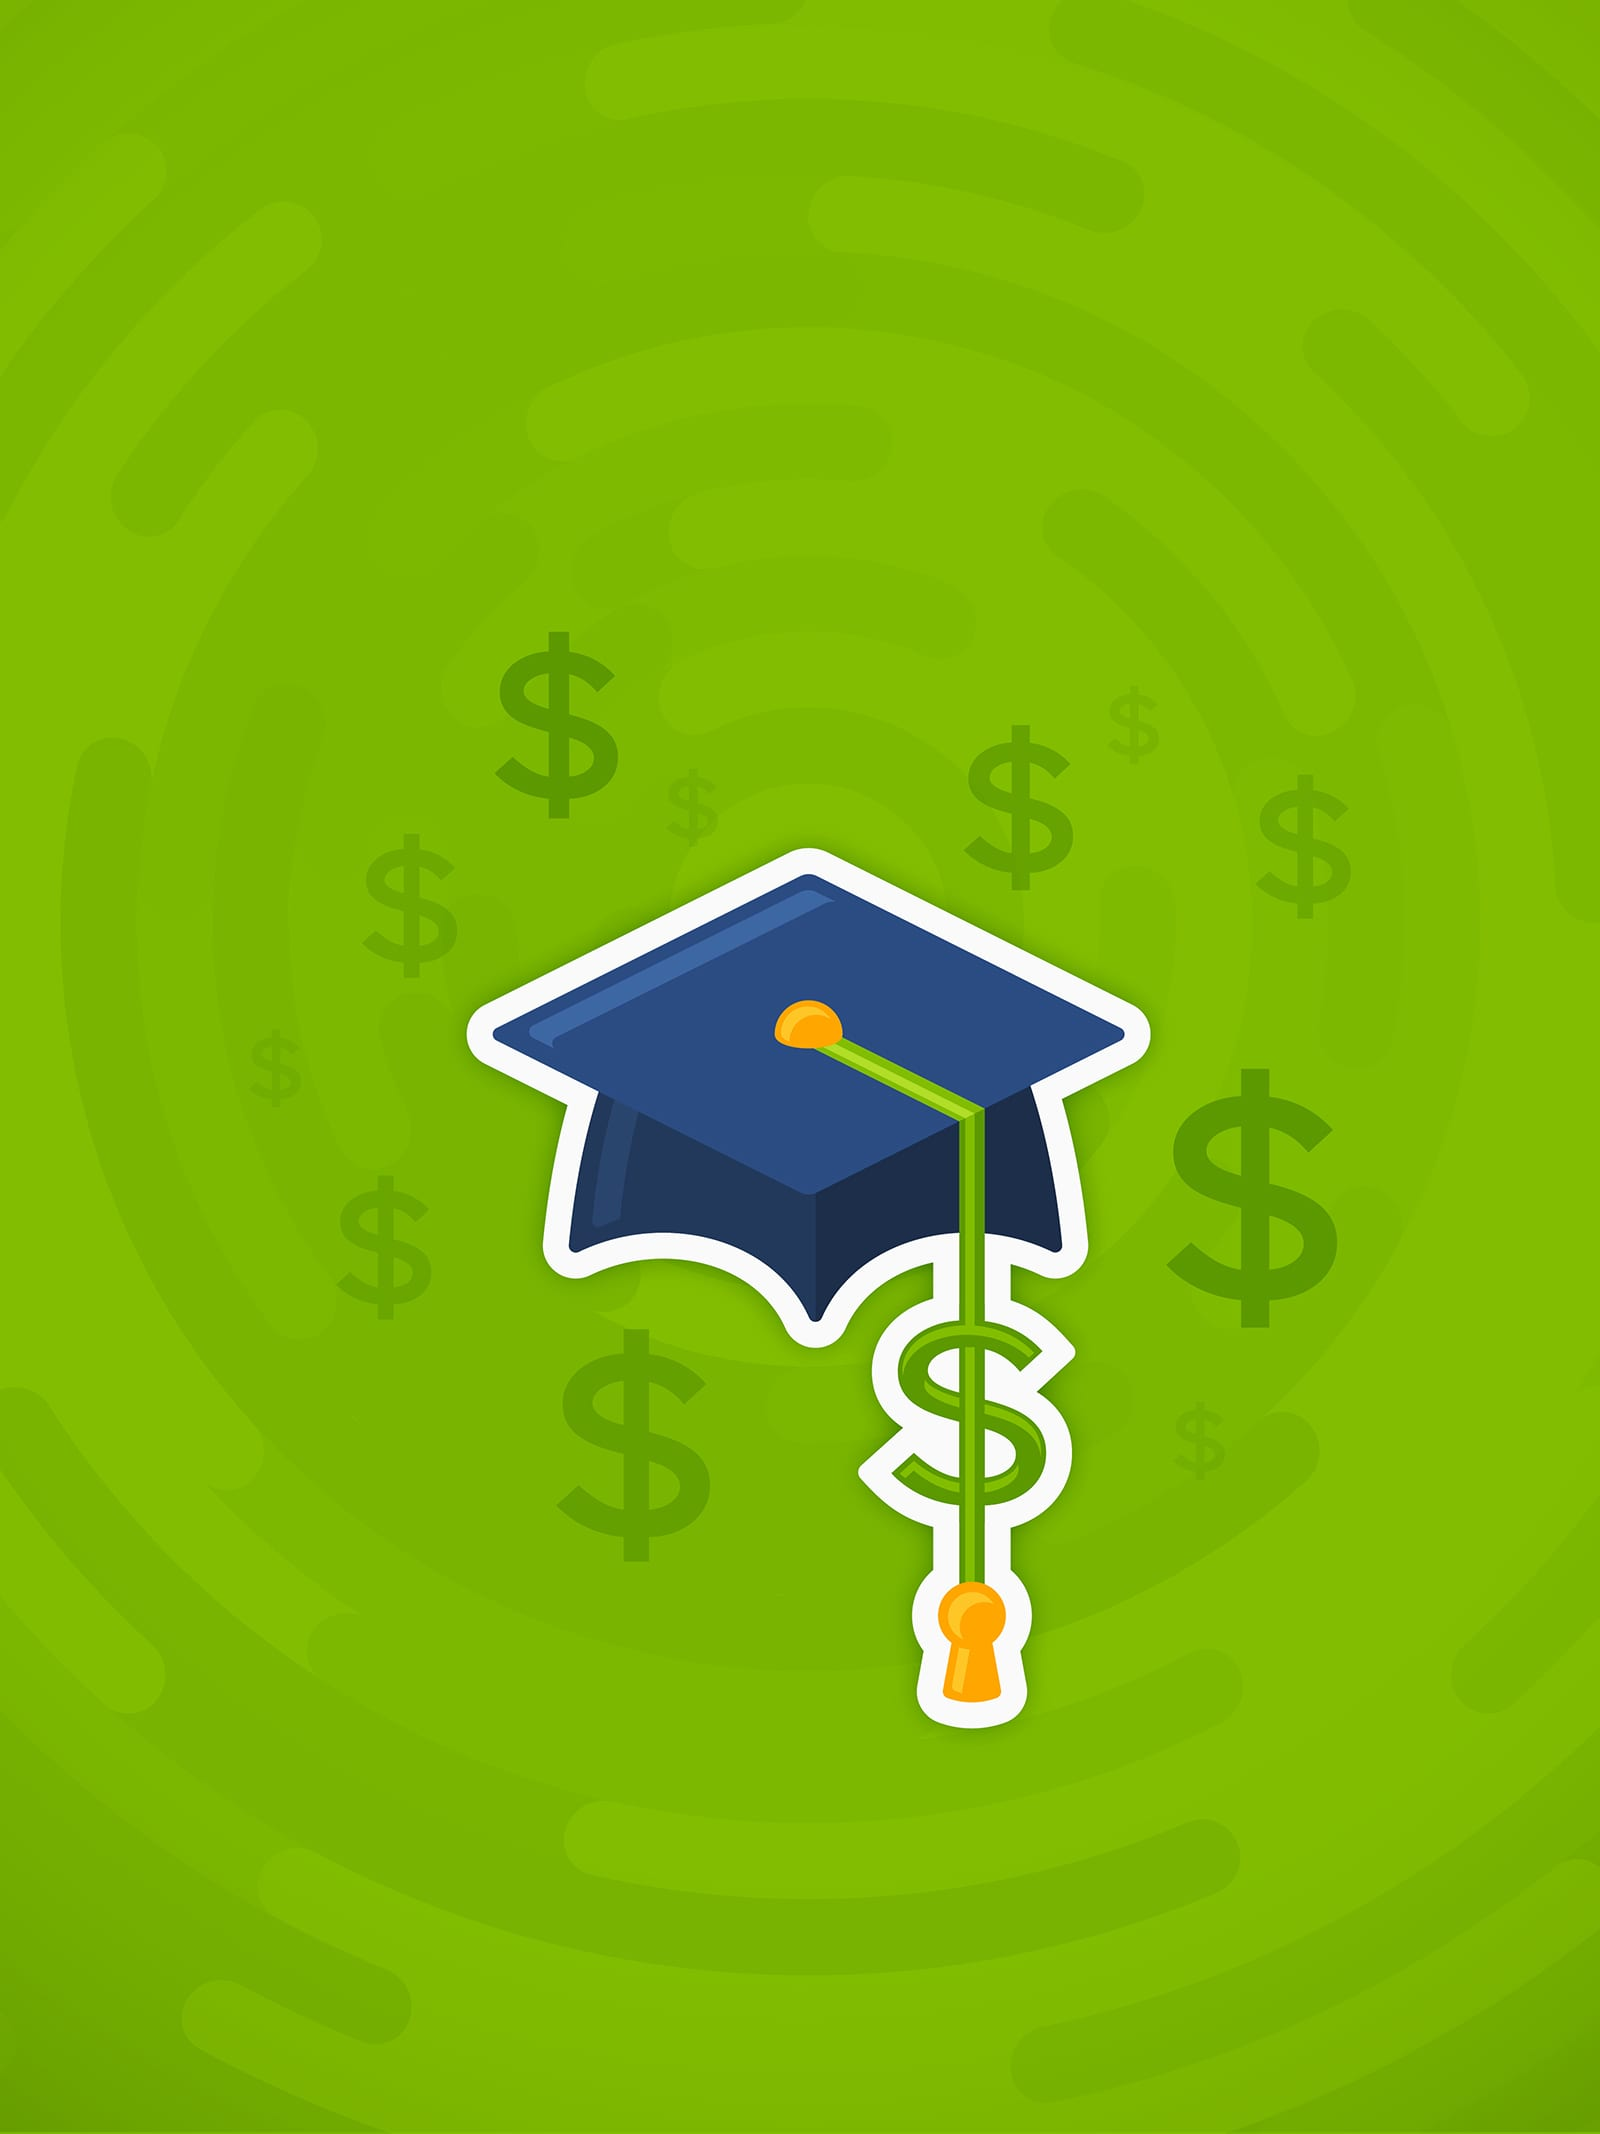 Zeal college and university tuition cost or student debt expense concept green illustration with cap and dollar signs.